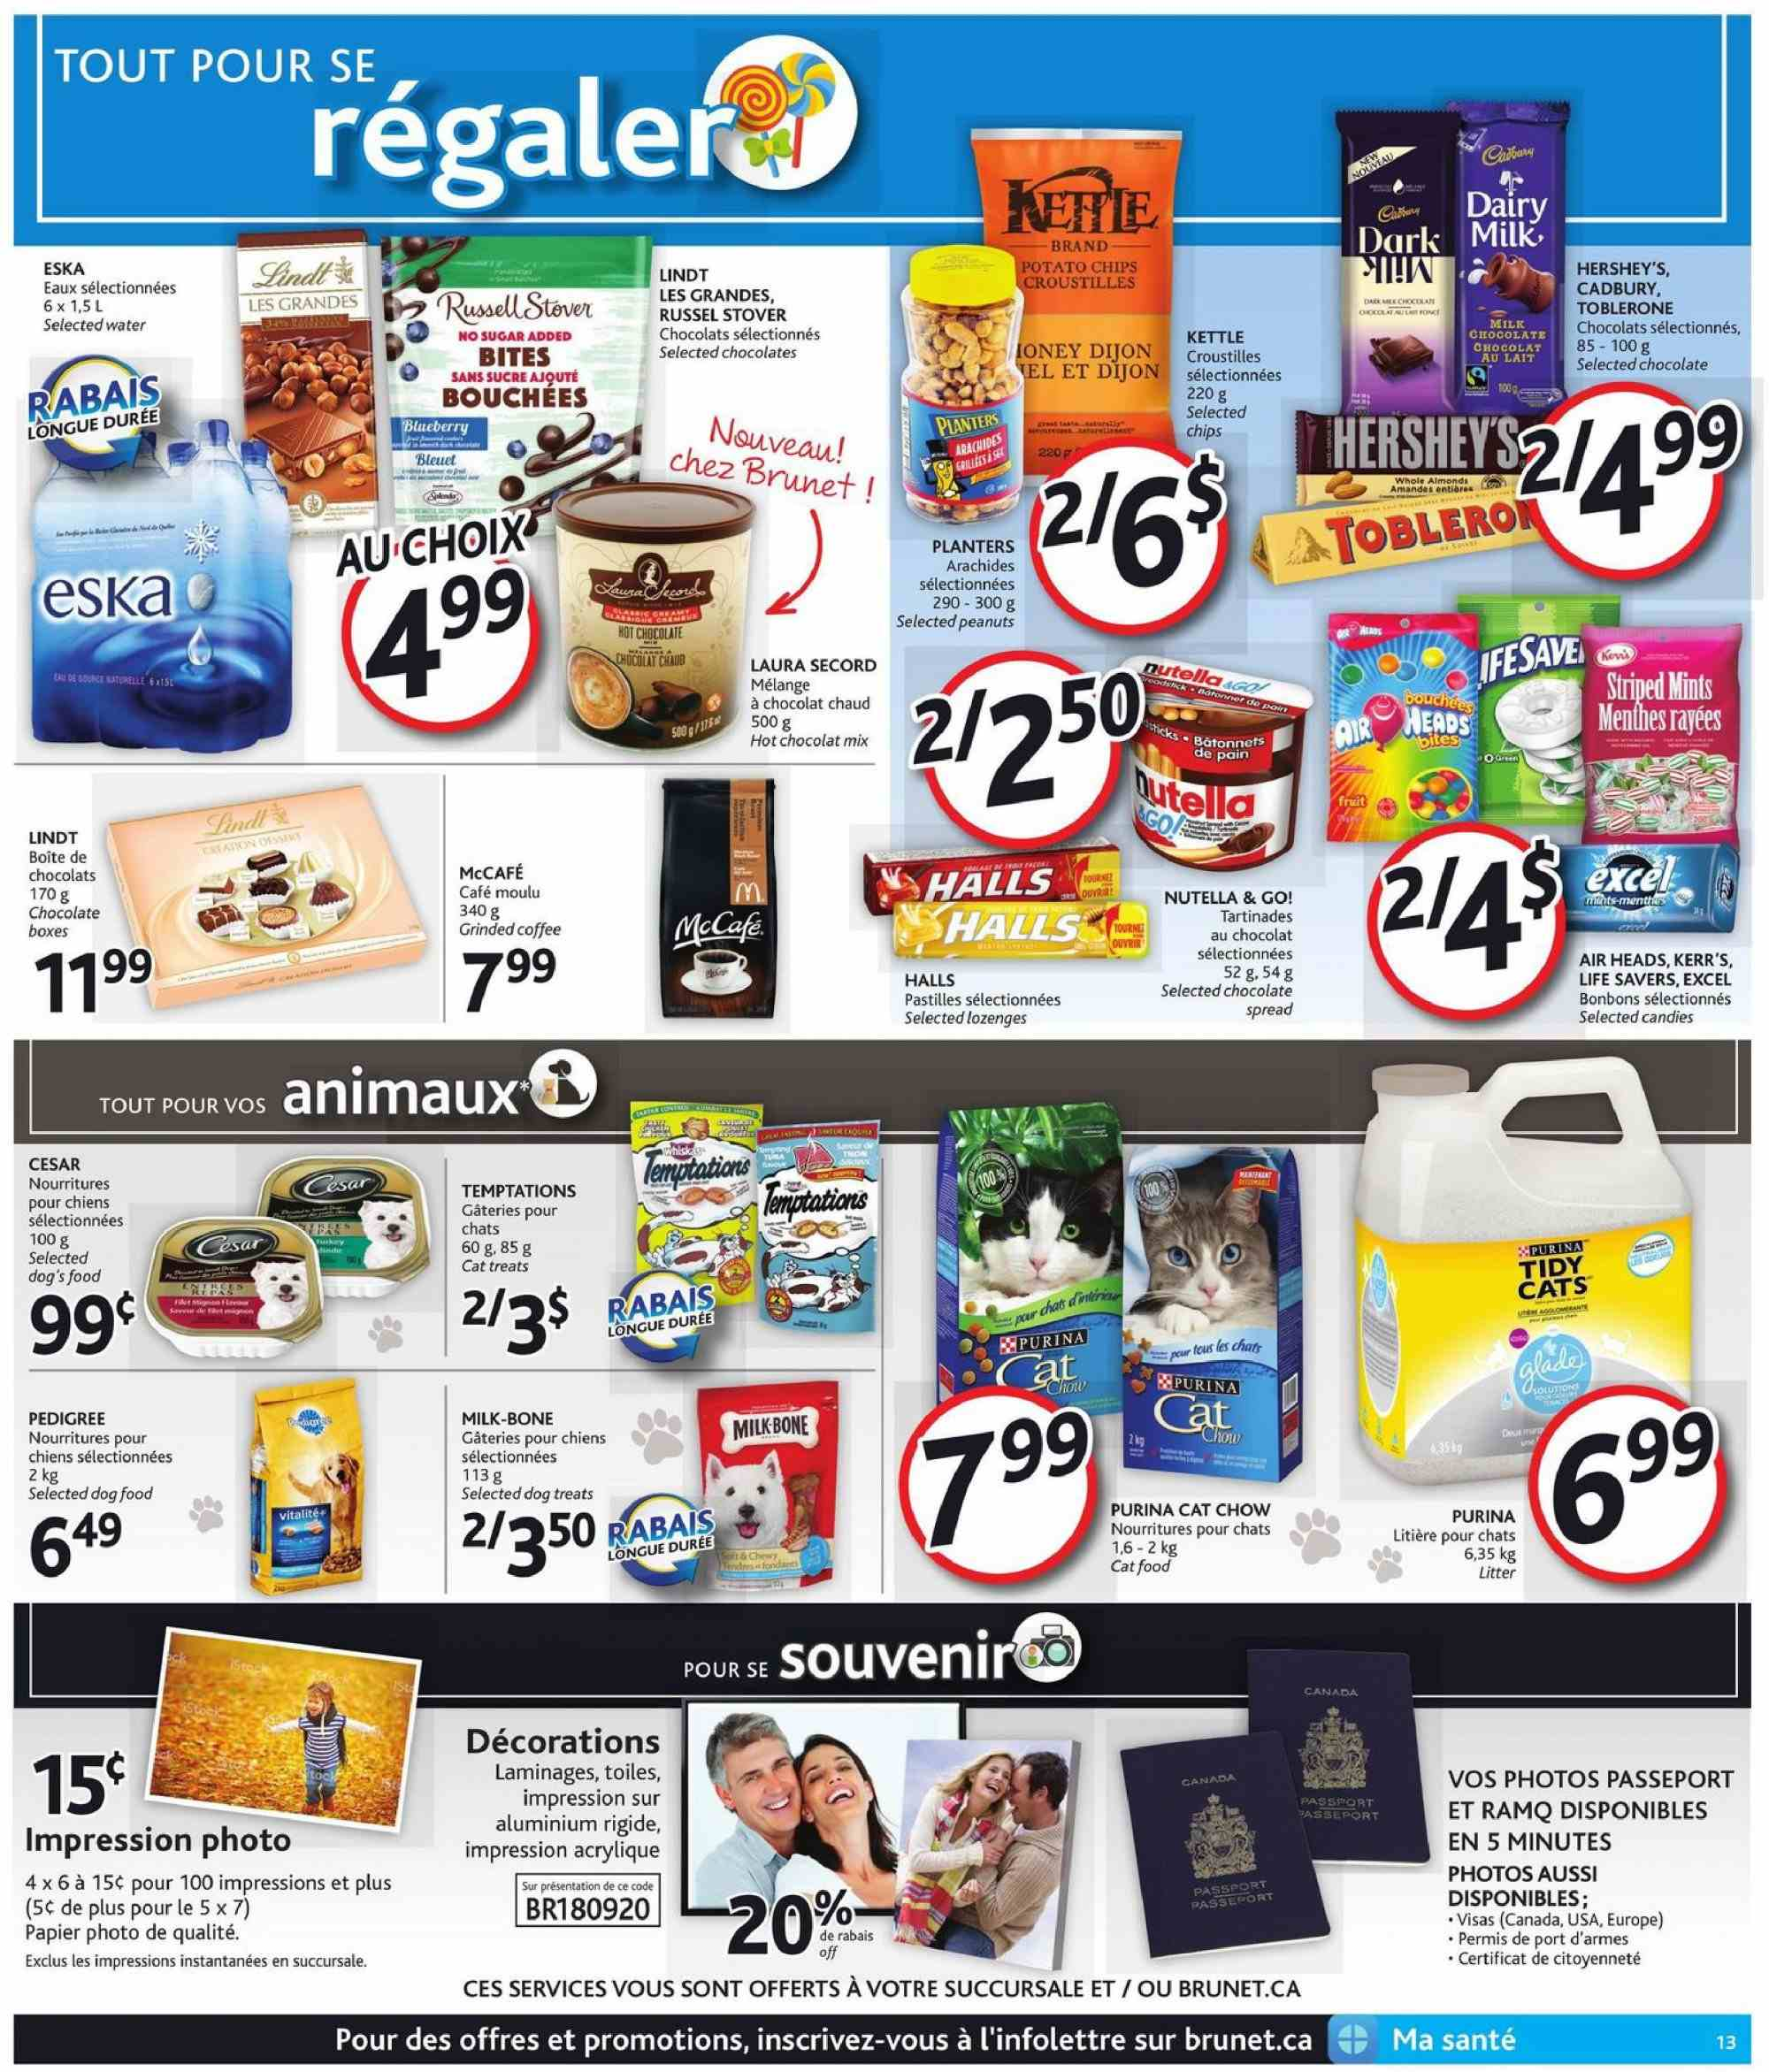 Brunet Flyer  - September 20, 2018 - September 26, 2018. Page 13.